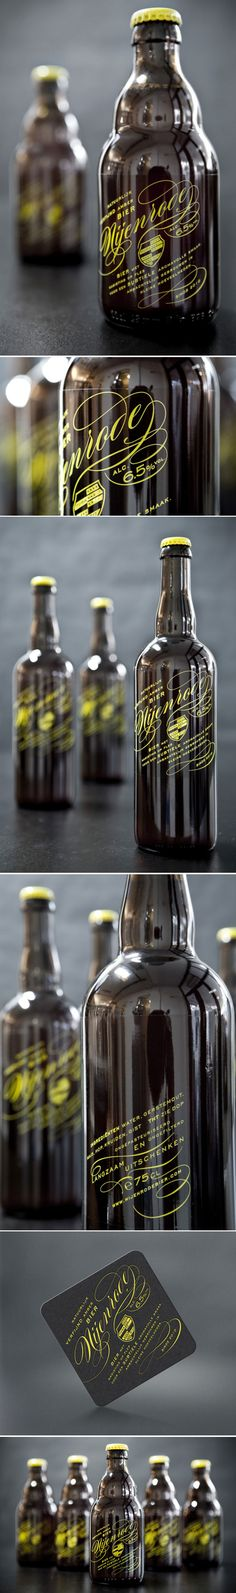 Nijenrode Bier - Designed by Redthumb *** A hand-crafted beer brewed in small batches in The Netherlands, Nijenrode is a much loved local secret amongst graduates from the Nijenrode University. *** #package #beer #label